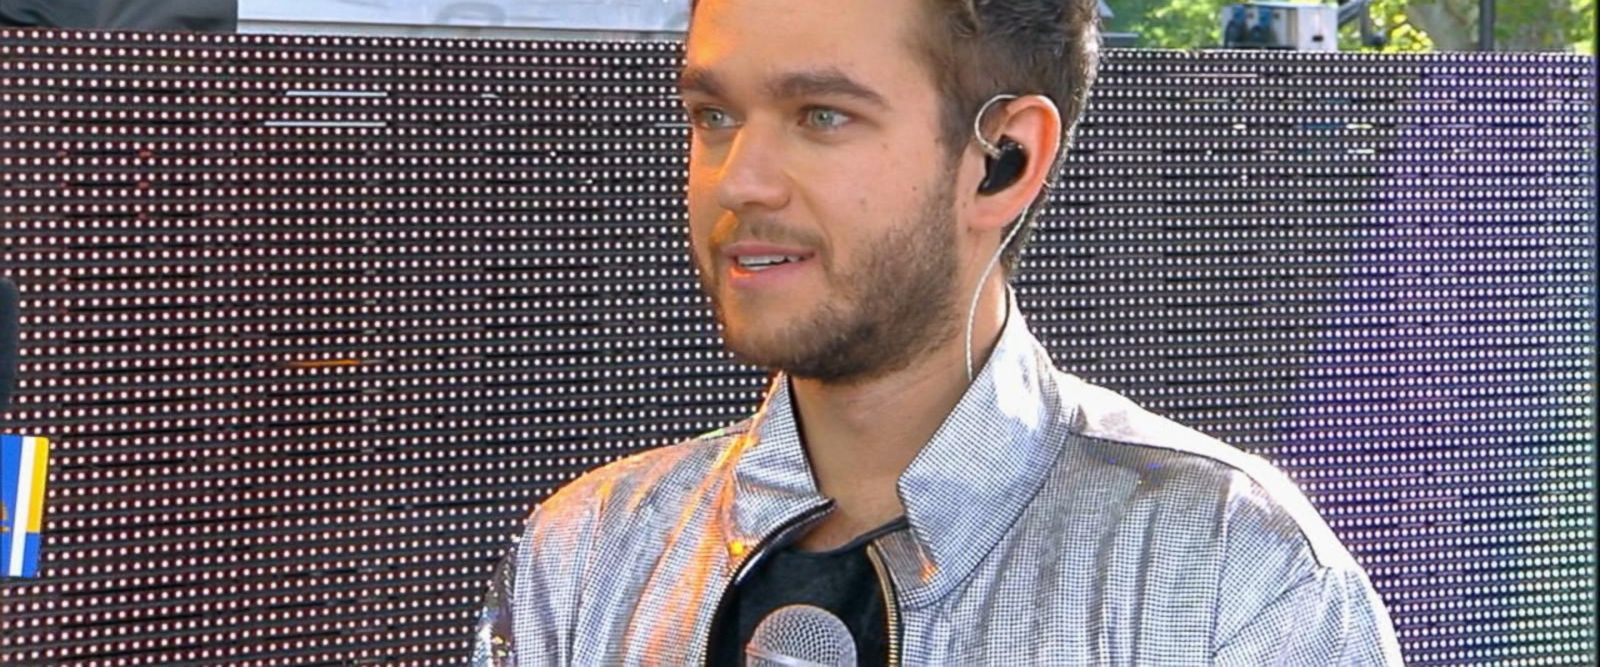 VIDEO: Catching up with Zedd live on 'GMA'